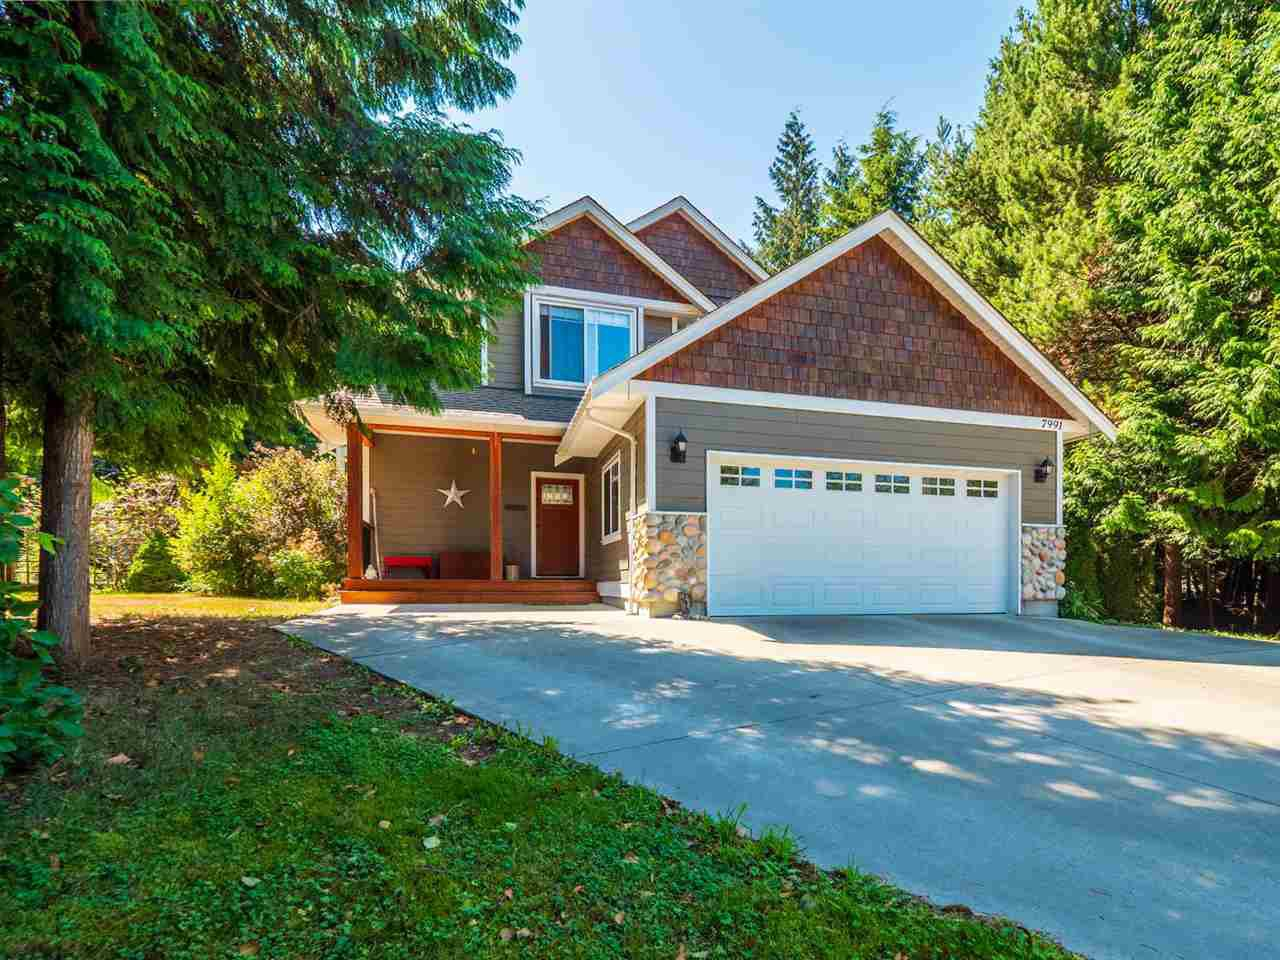 7991 Lohn is gated and near the end of the cul-de-sac offering a double attached garage, open floor plan living area and an exceptional sized back yard.